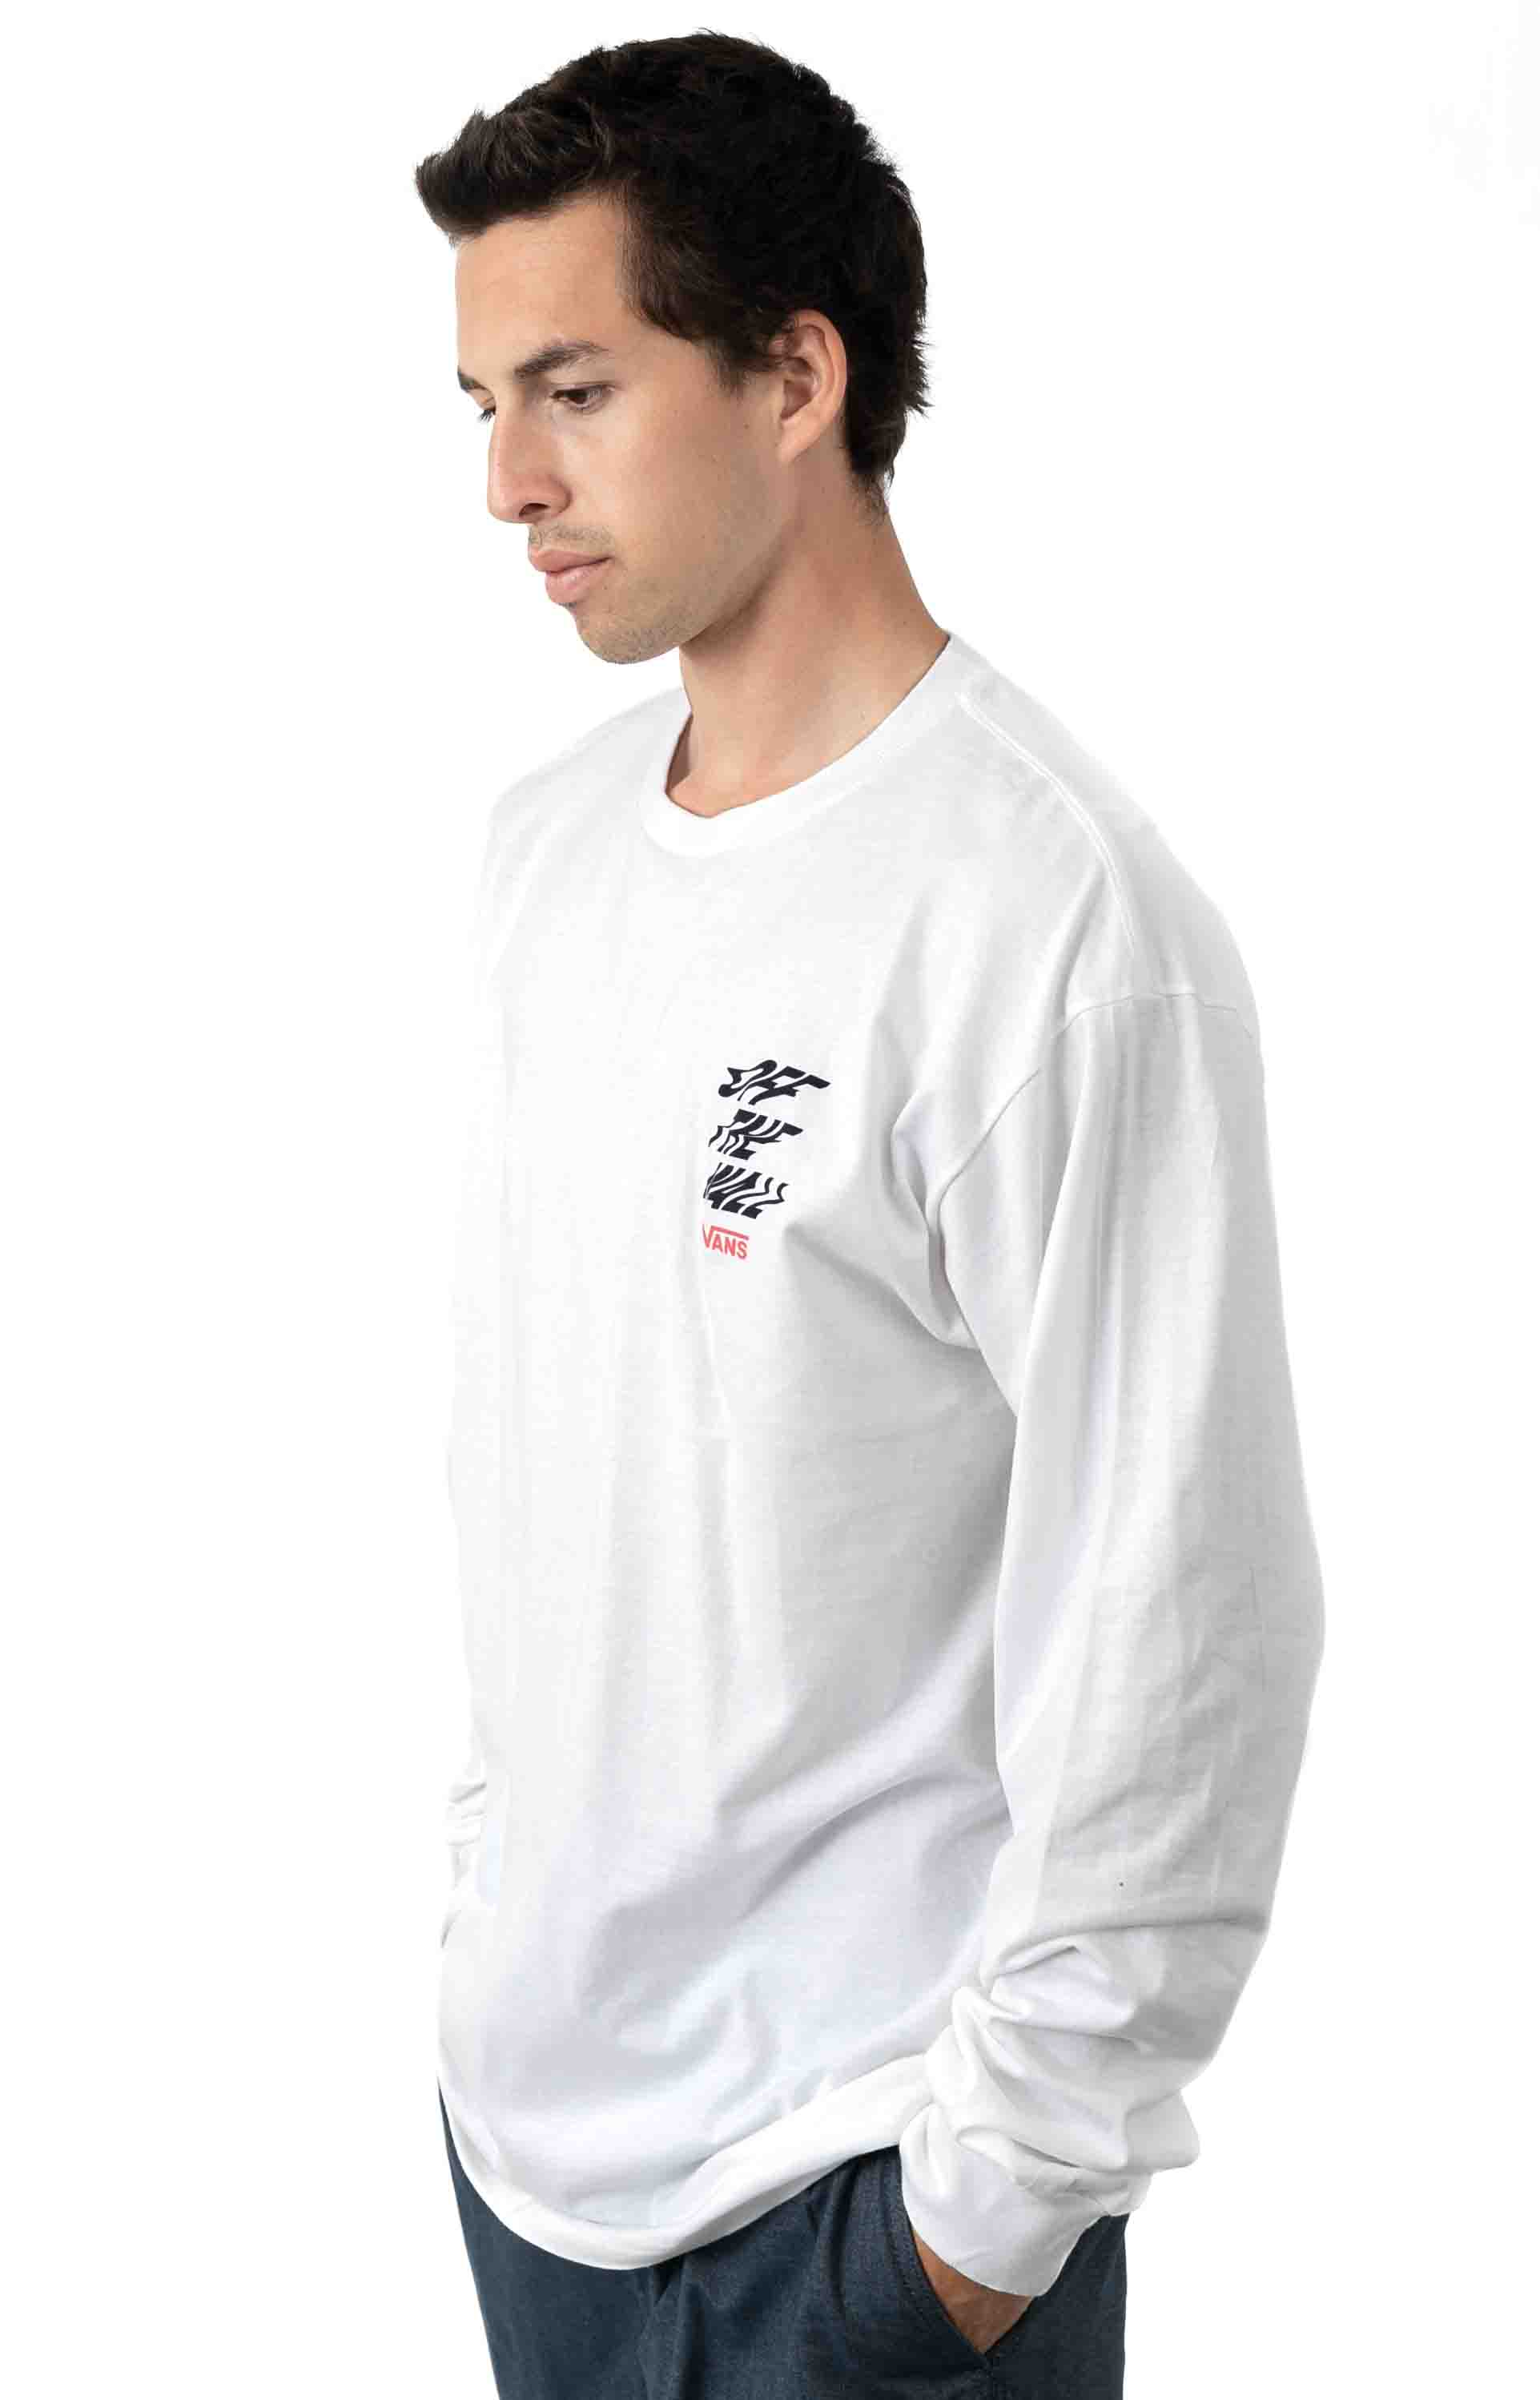 V66 Off The Wall L/S Shirt - White 3